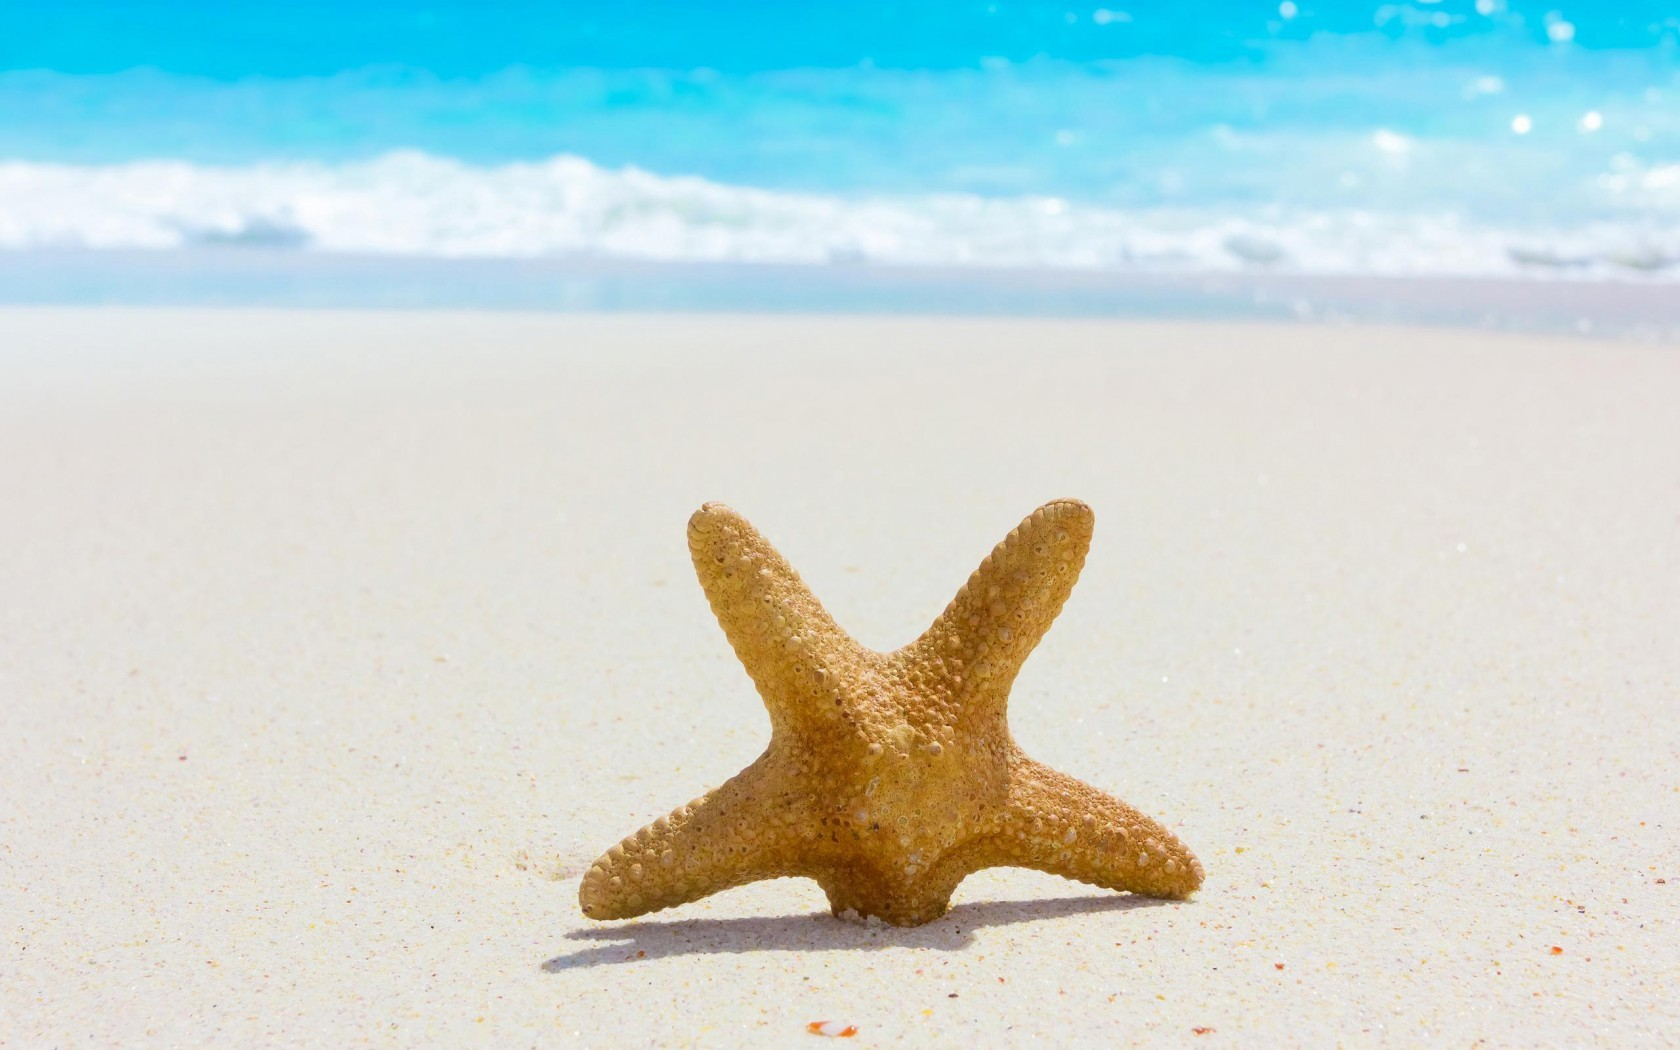 21497 download wallpaper Landscape, Sea, Beach, Sand, Starfish screensavers and pictures for free